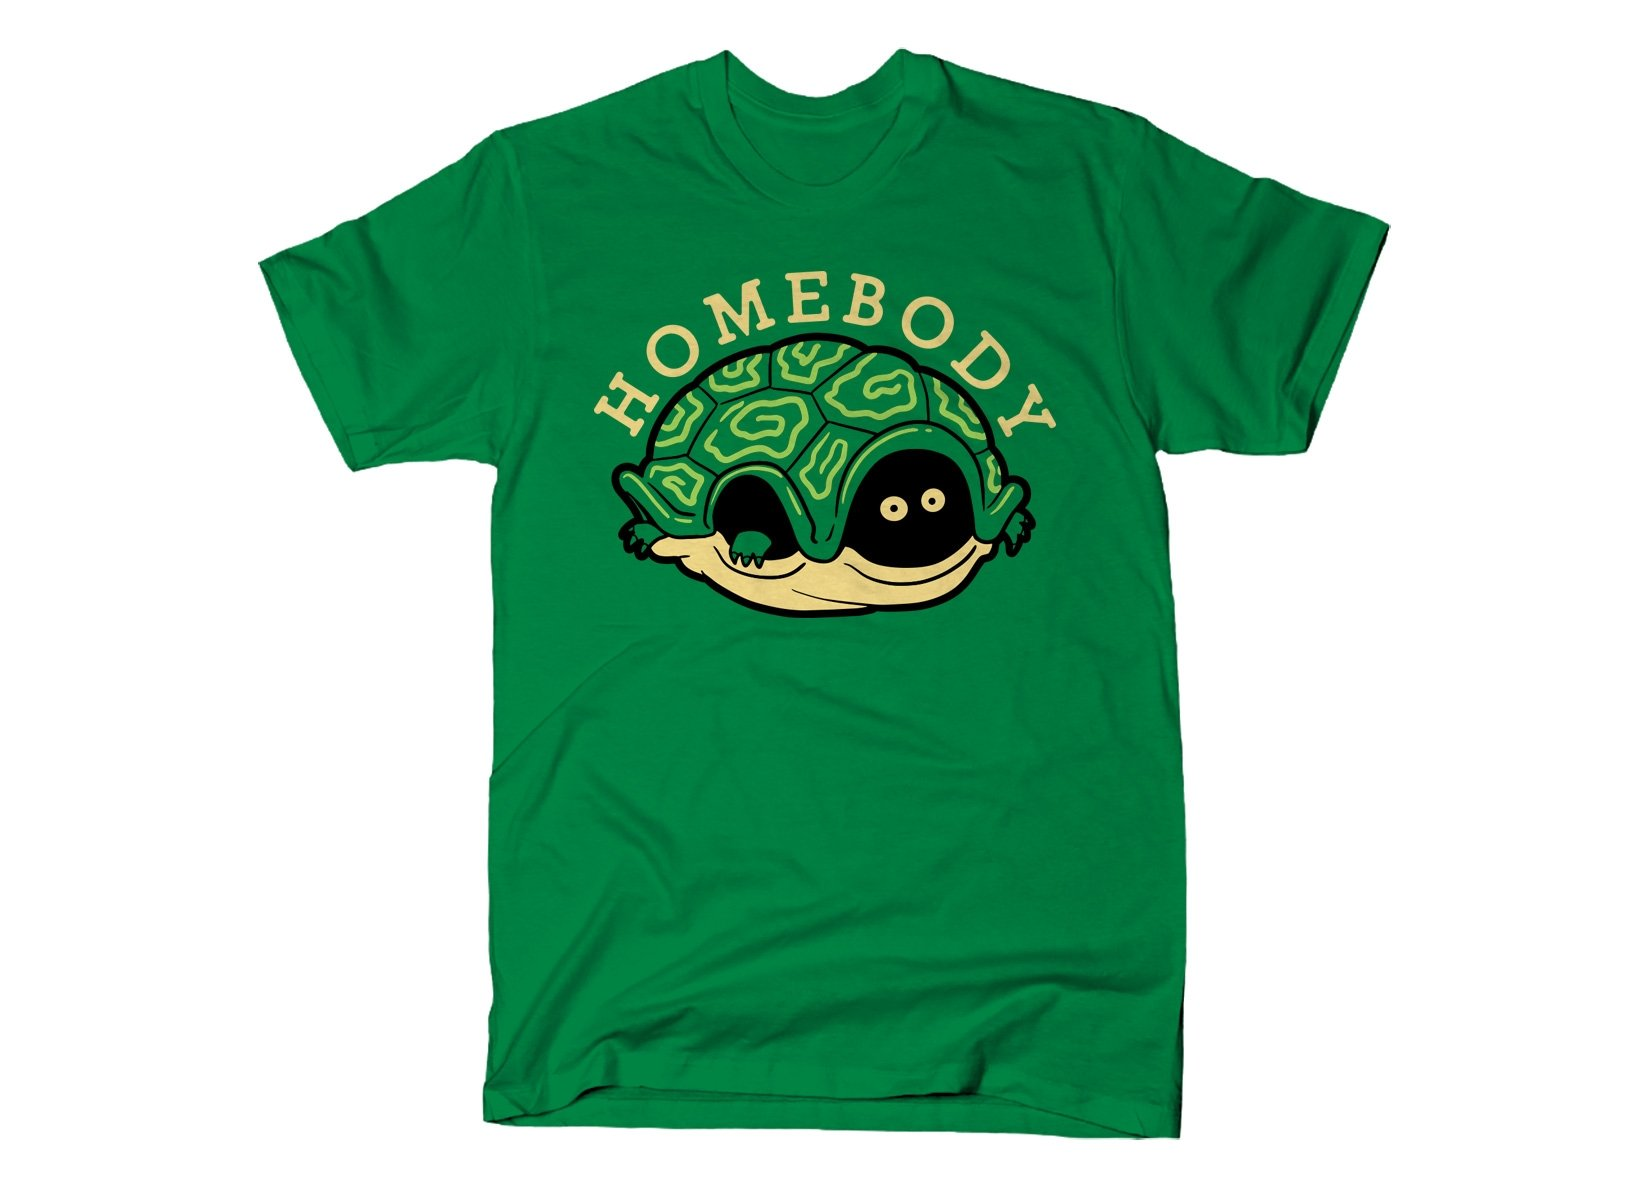 Homebody on Mens T-Shirt